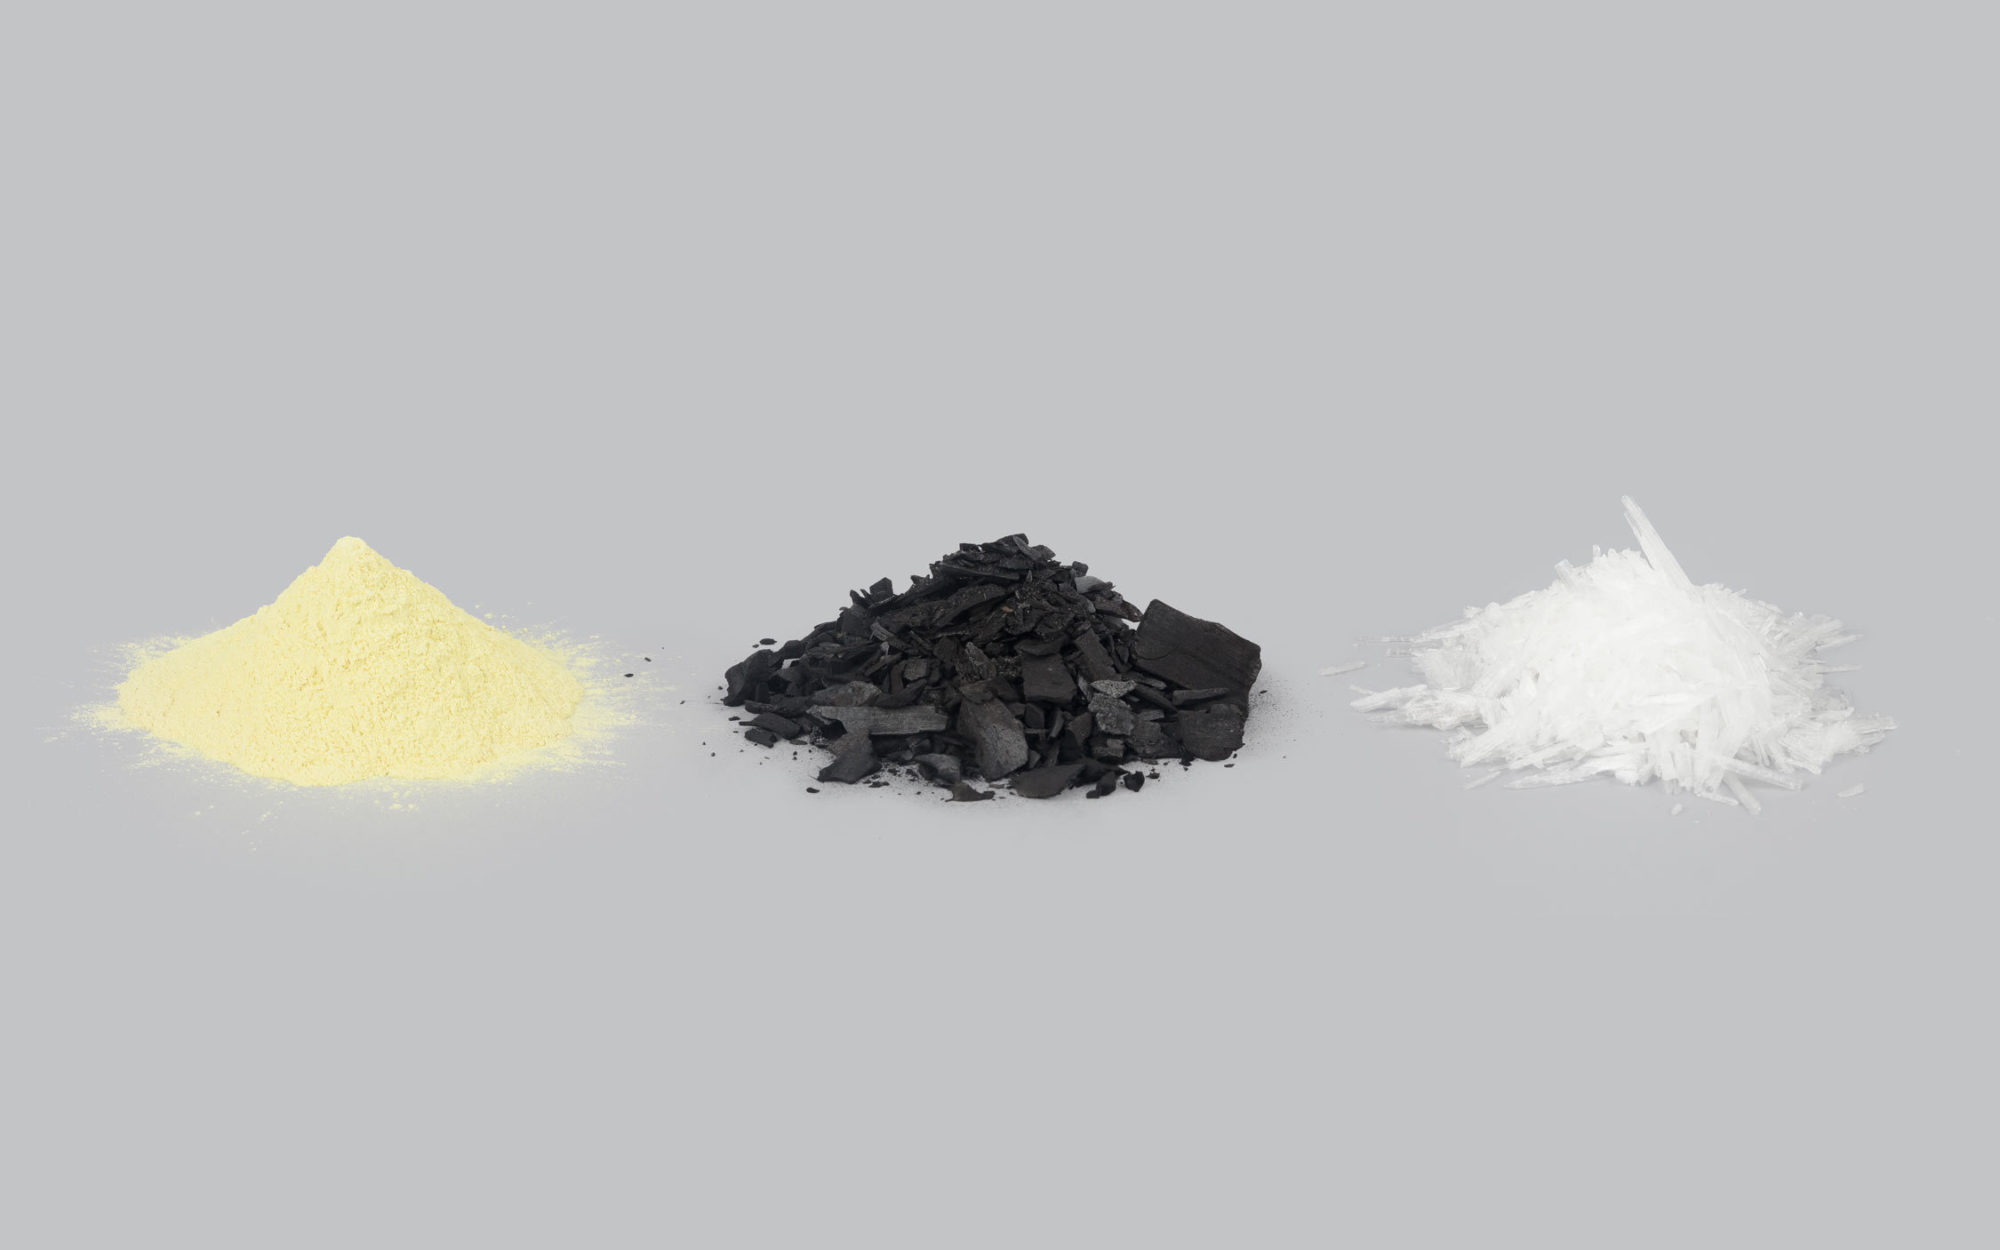 A yellow pile of sulfur, a black pile of charcoal, and a white pile of saltpeter against a gray background